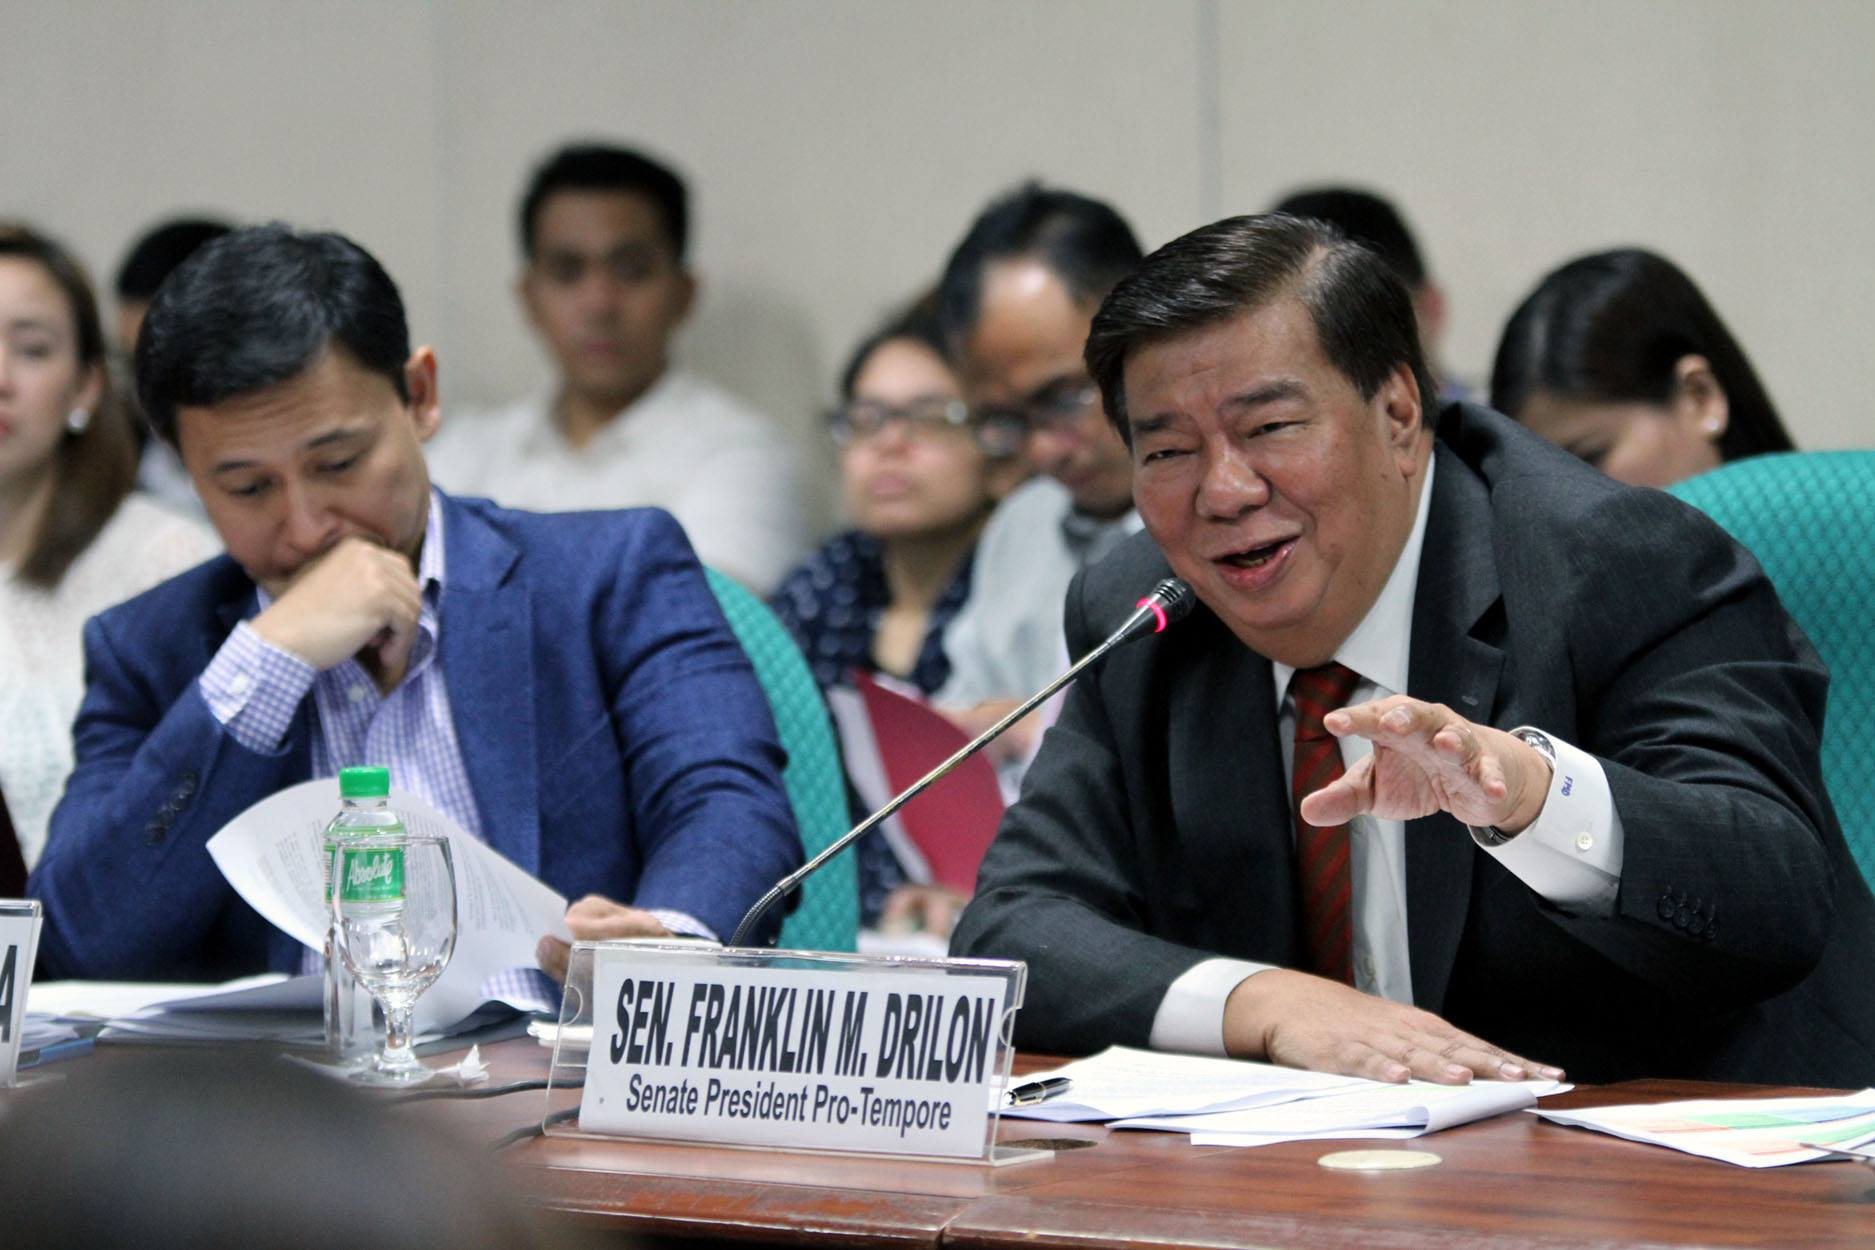 Image of Senator Franklin Drilon has an interrogative statement pertaining to the President Duterte's declaration of 'State of Lawlessness' saying that the terror attack committed by the Abu Sayyaf Group (ASG) was just an isolated incident.